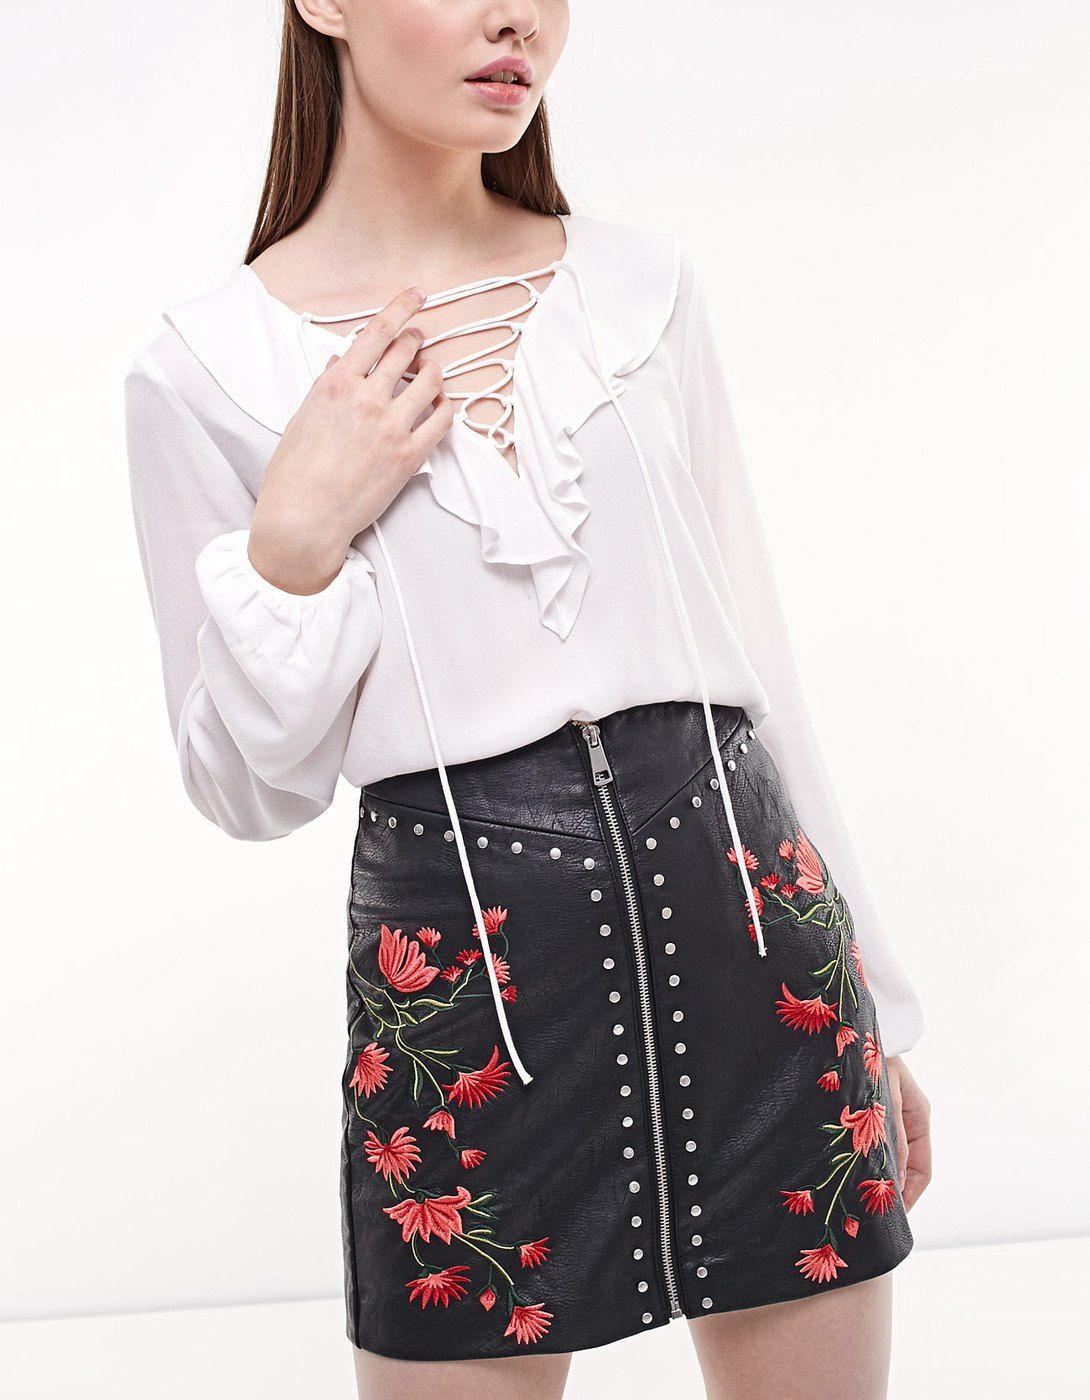 368621496d6b21 At Stradivarius you'll find 1 Leather look skirt with embroidery and stud  detail for just 179.9 Israel . Visit now to discover this and more Skirts.